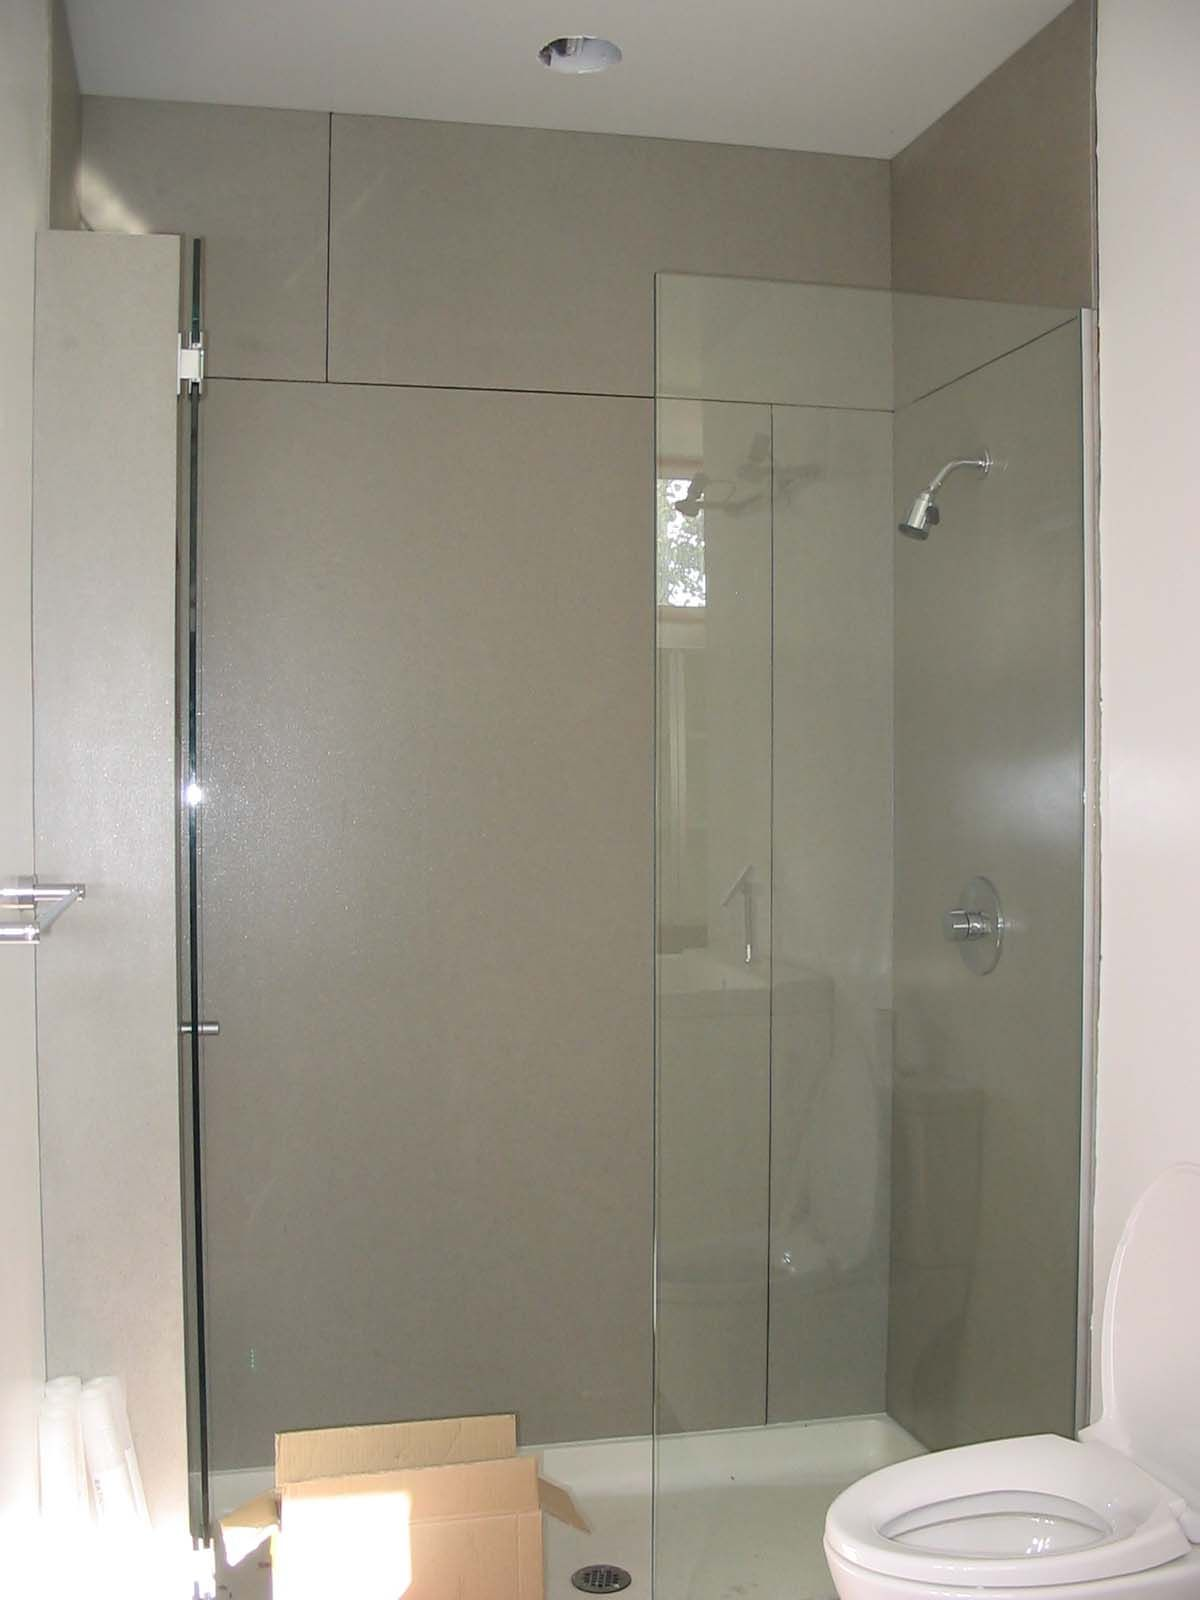 Cement Walls Shower Minerit Lightweight Bathrooms